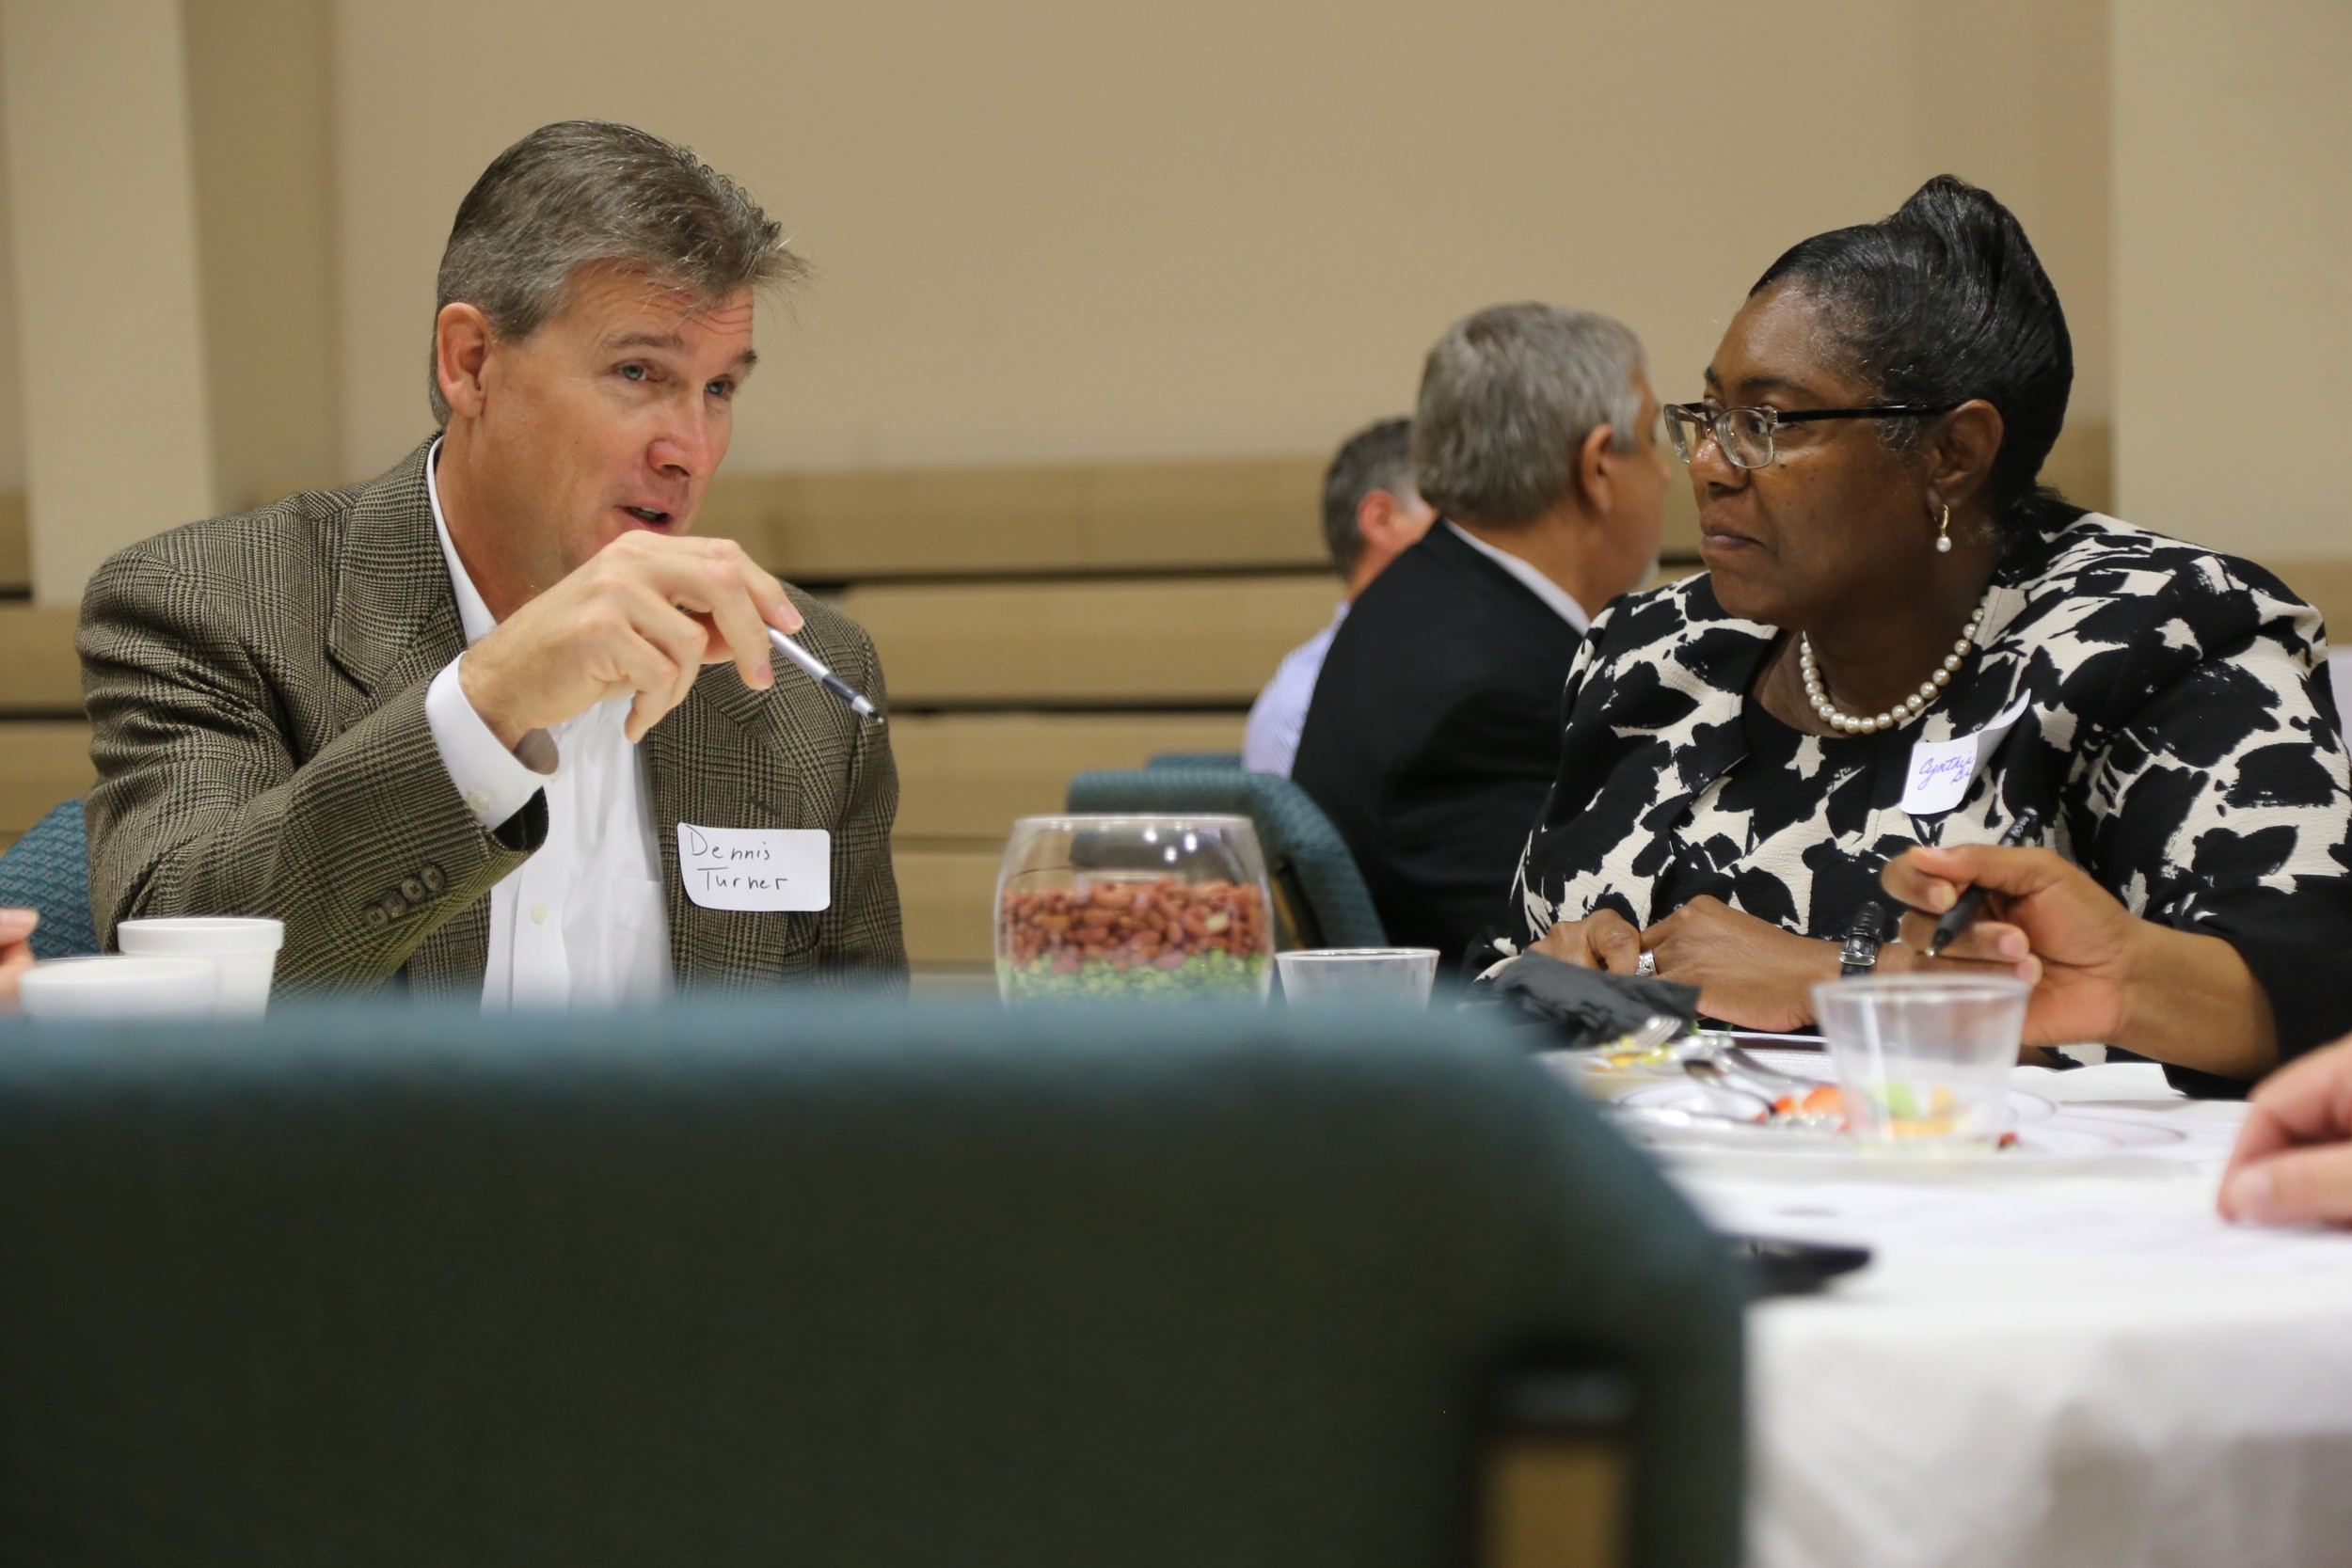 Dennis Turner, left, chairman of the Greater Sumter Chamber of Commerce's Education Committee, talks with Cynthia Graham, Sumter School District's director of literacy programs, on Friday at the Leaders for Learning Partnership Breakfast.